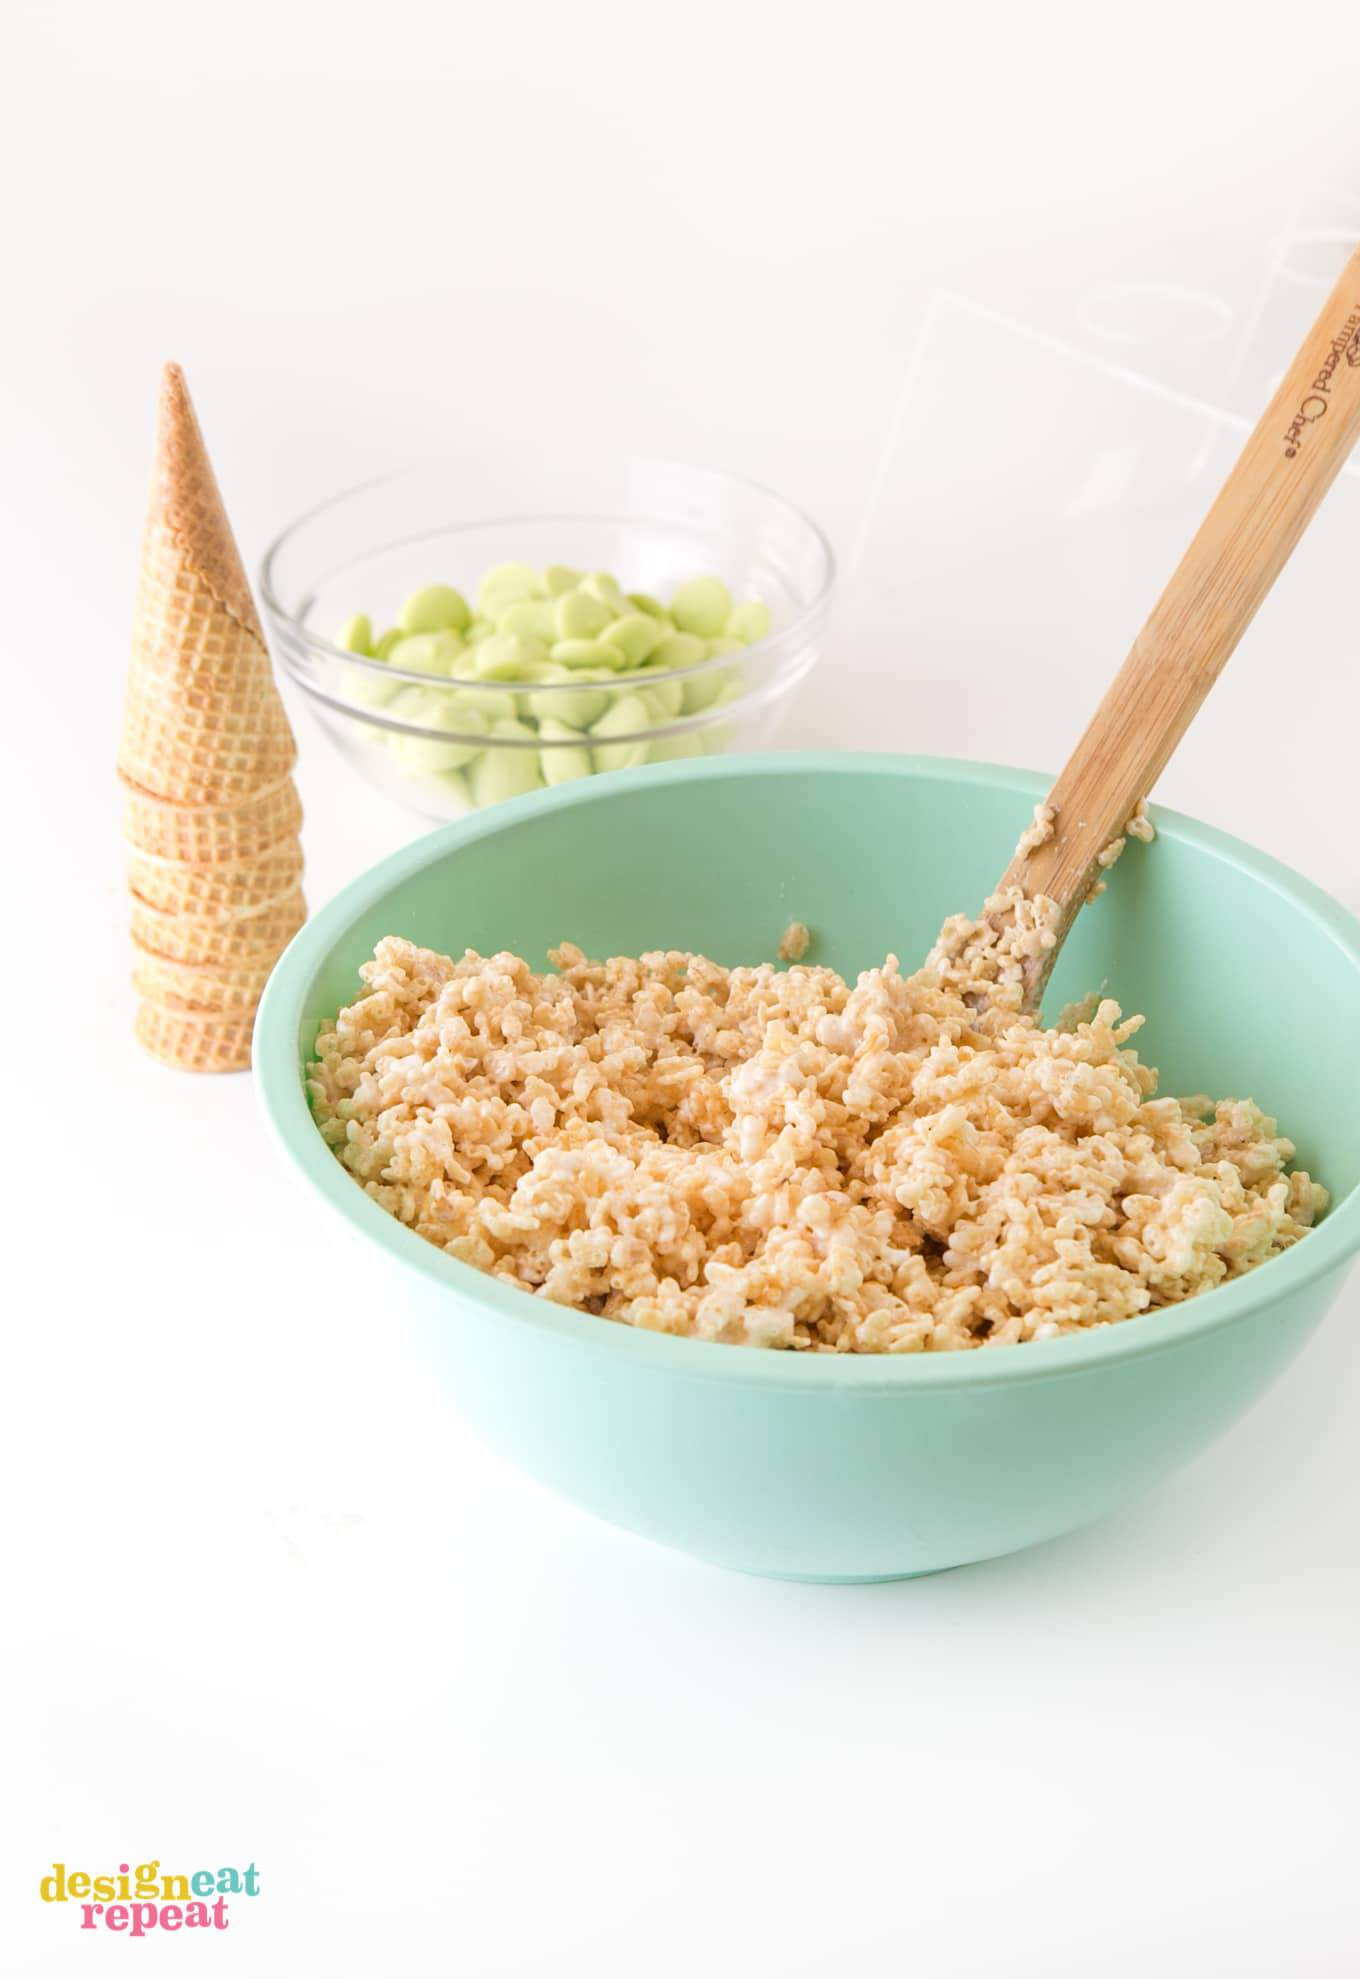 Mixing rice krispy cereal treats with wooden spoon in large blue bowl.